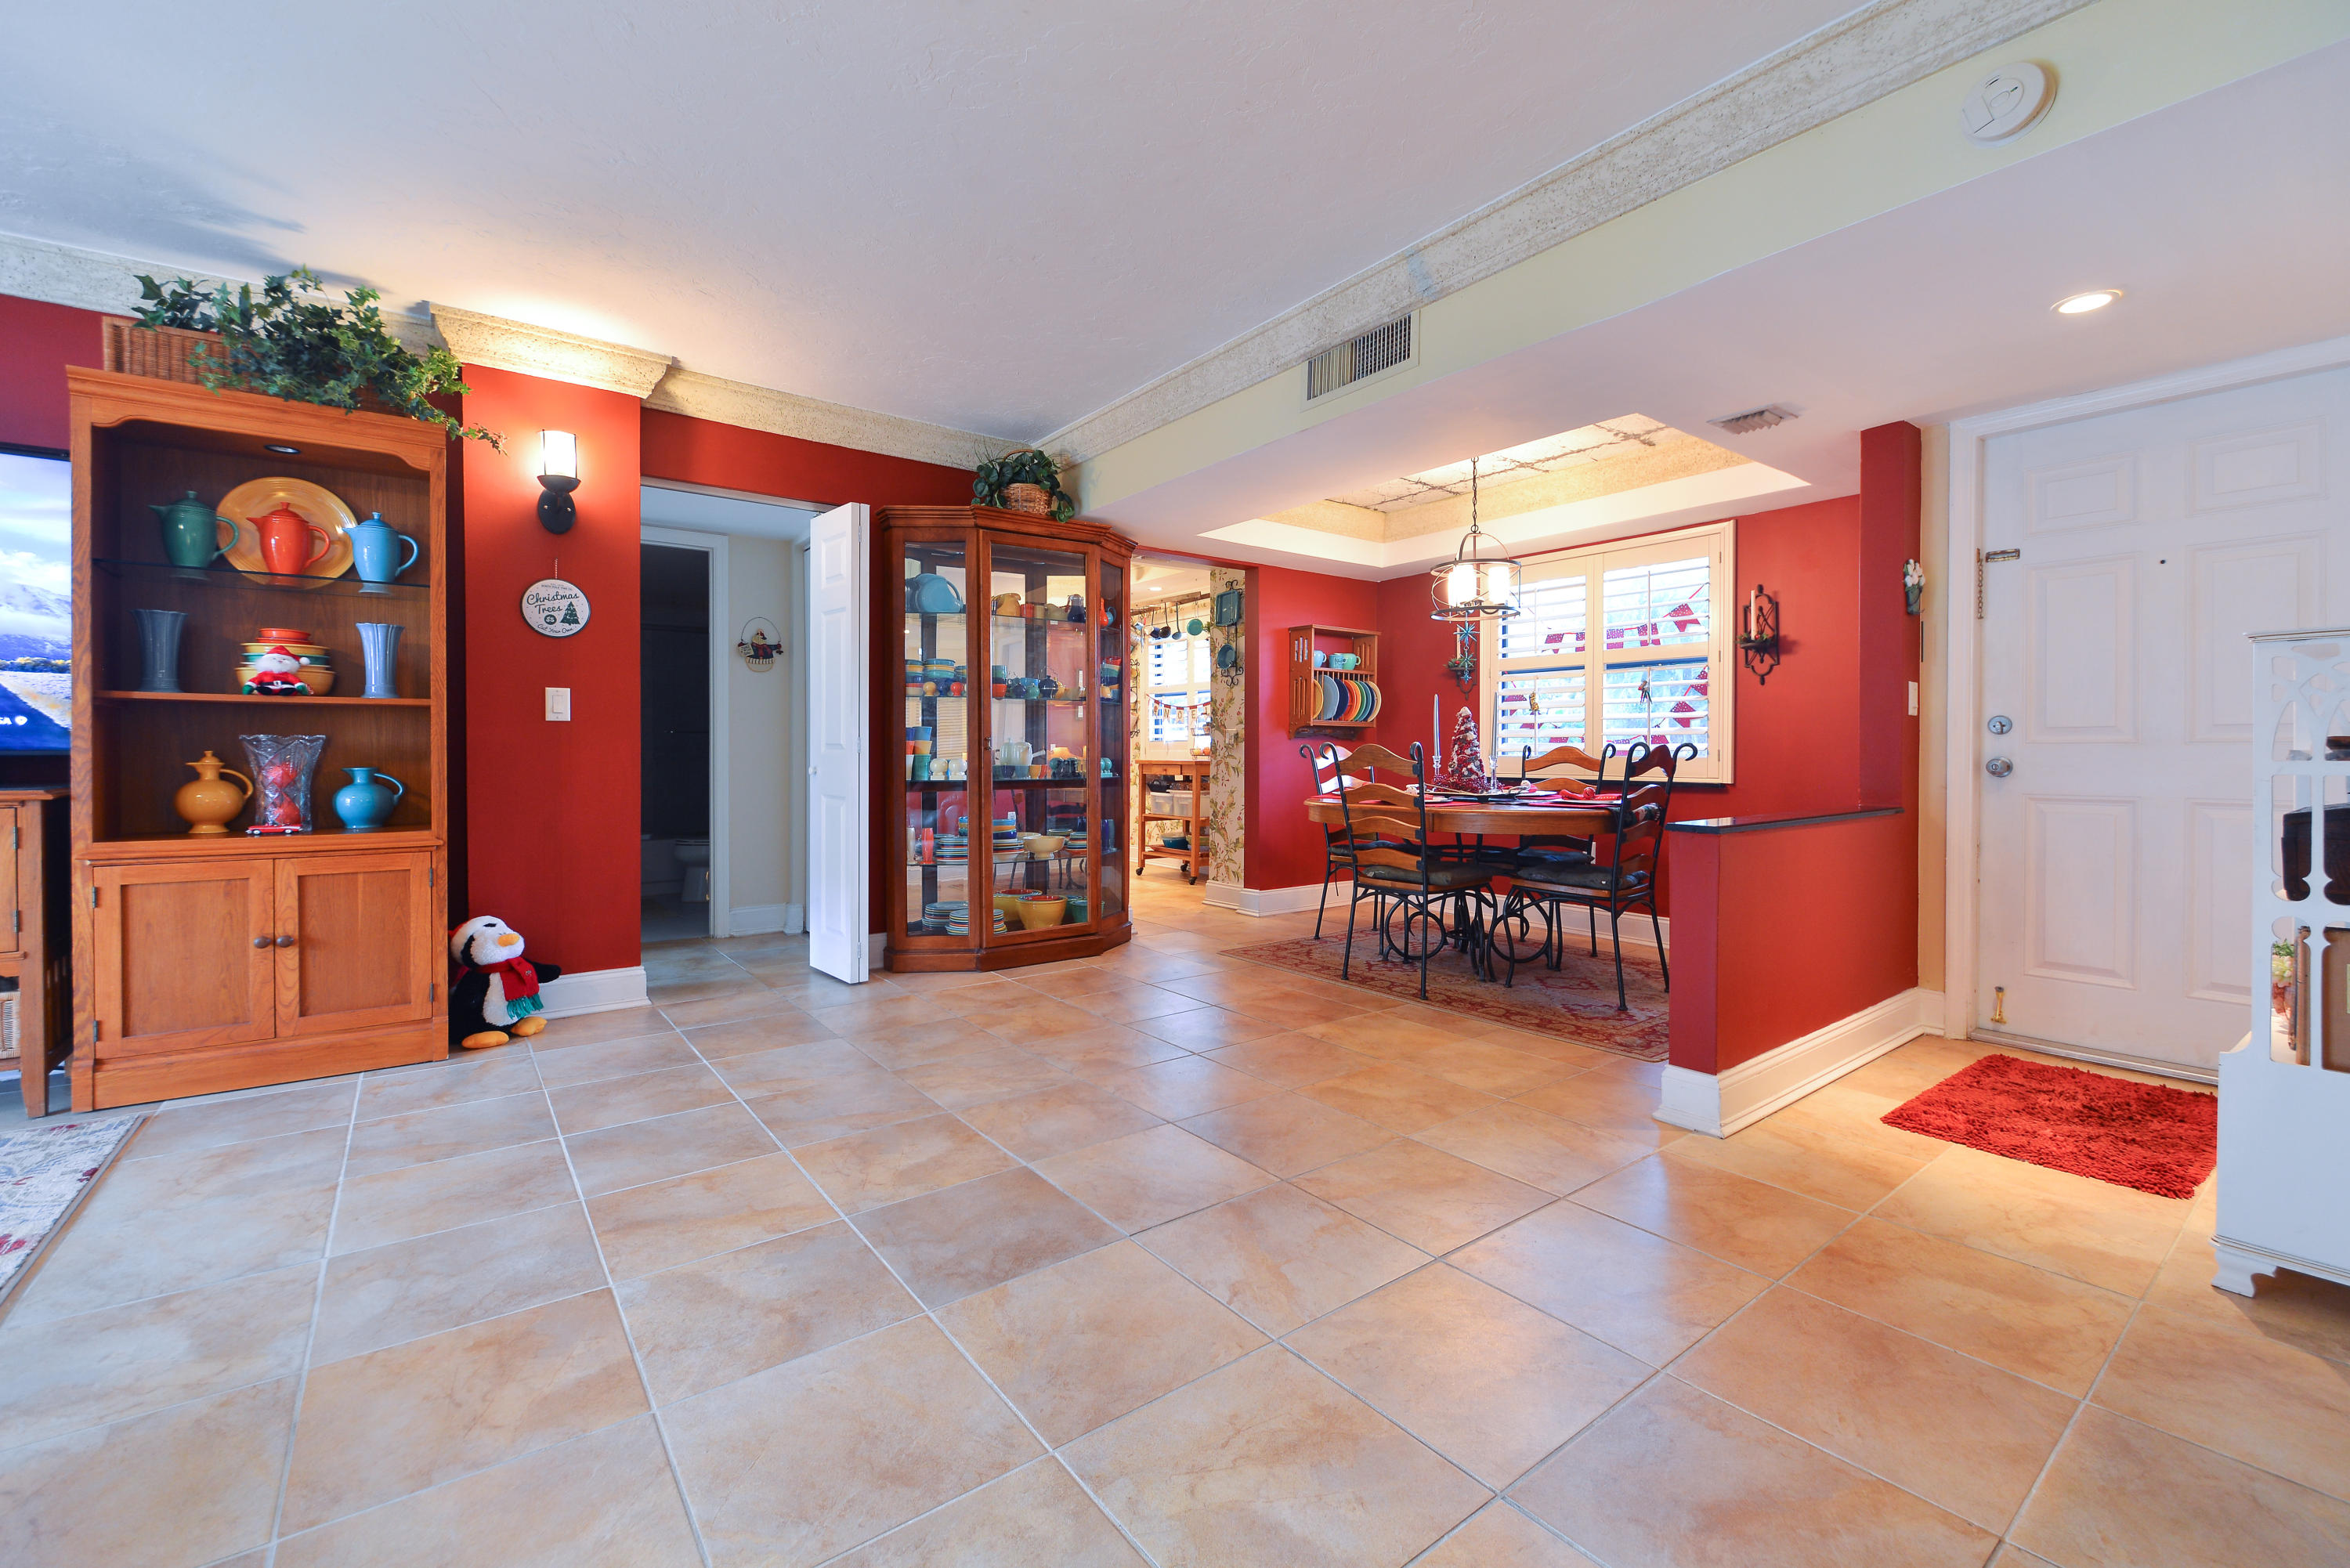 Home for sale in inlet harbor club condo Boynton Beach Florida